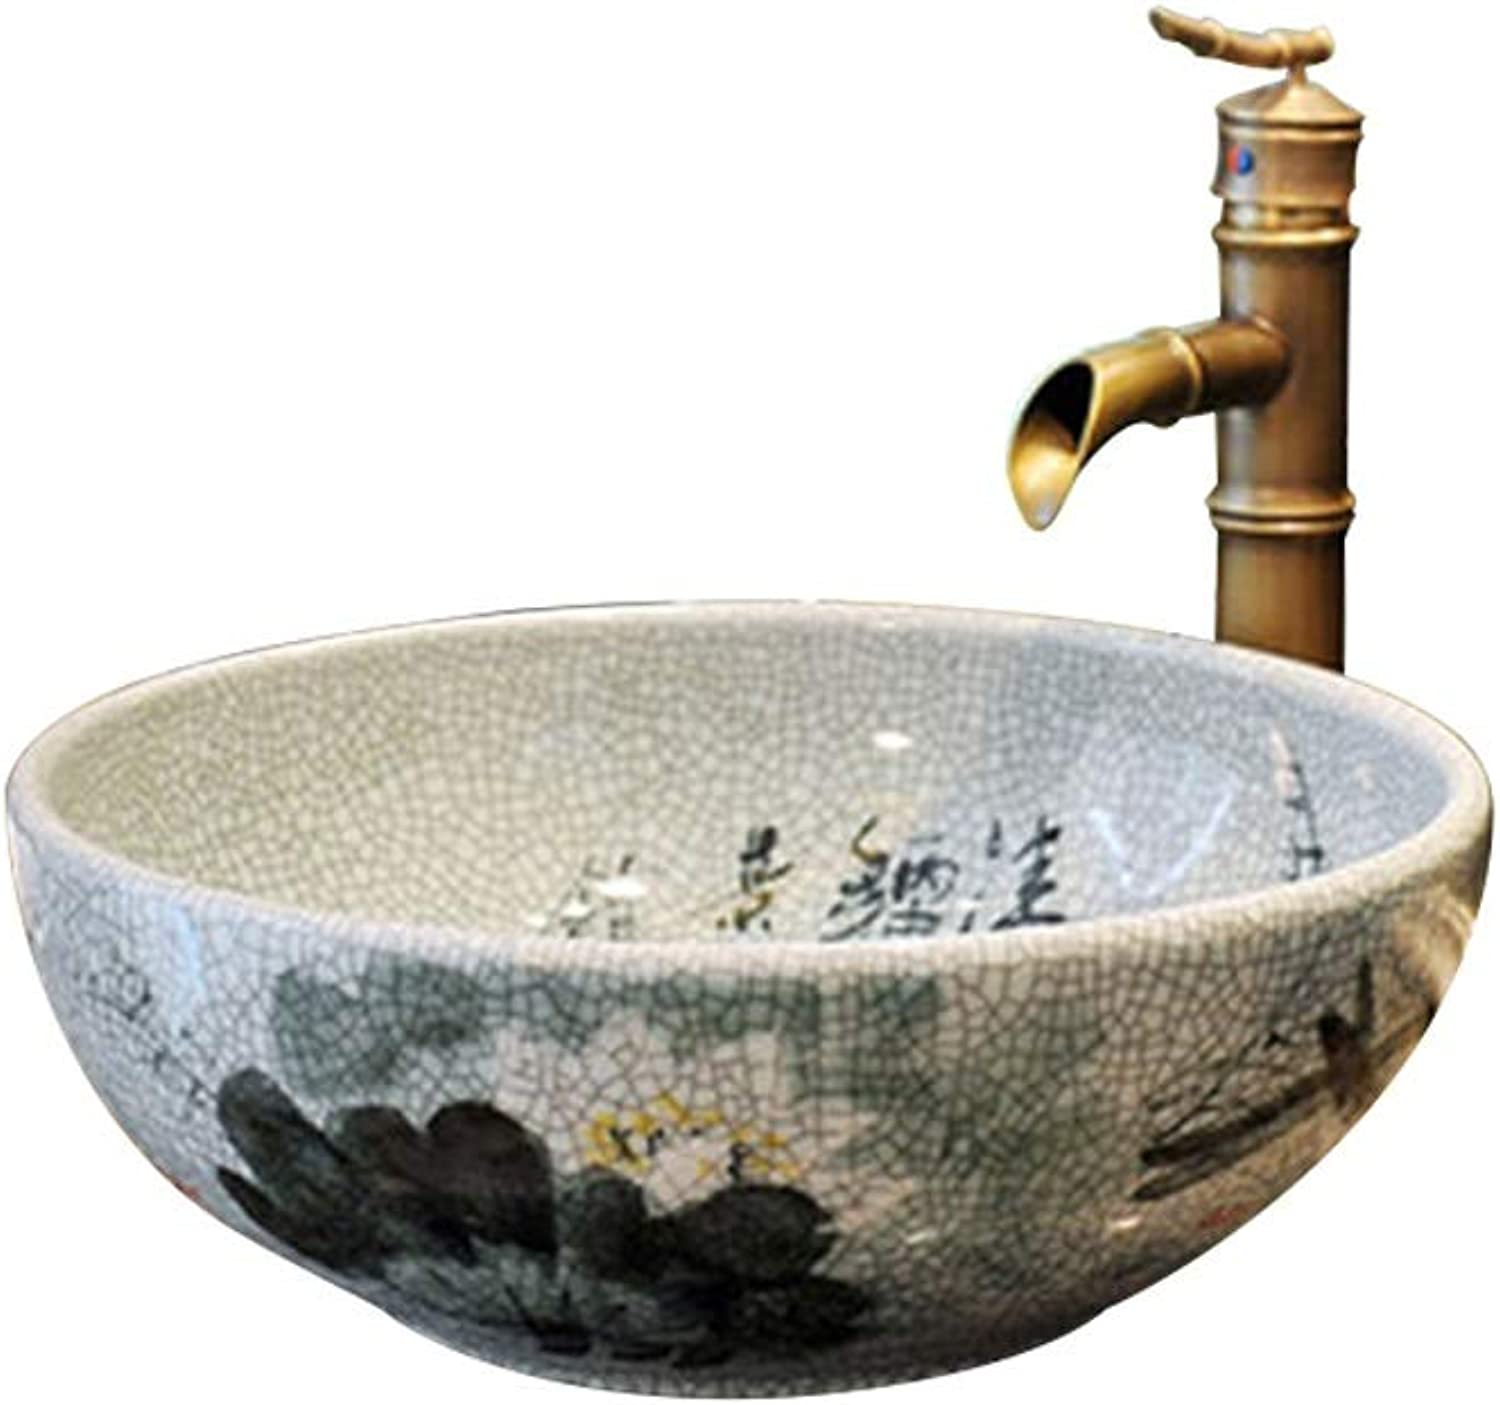 Round Ceramic Washing Basin, Countertop Basin Sink ,41X15 Cm (Faucet Not Included)